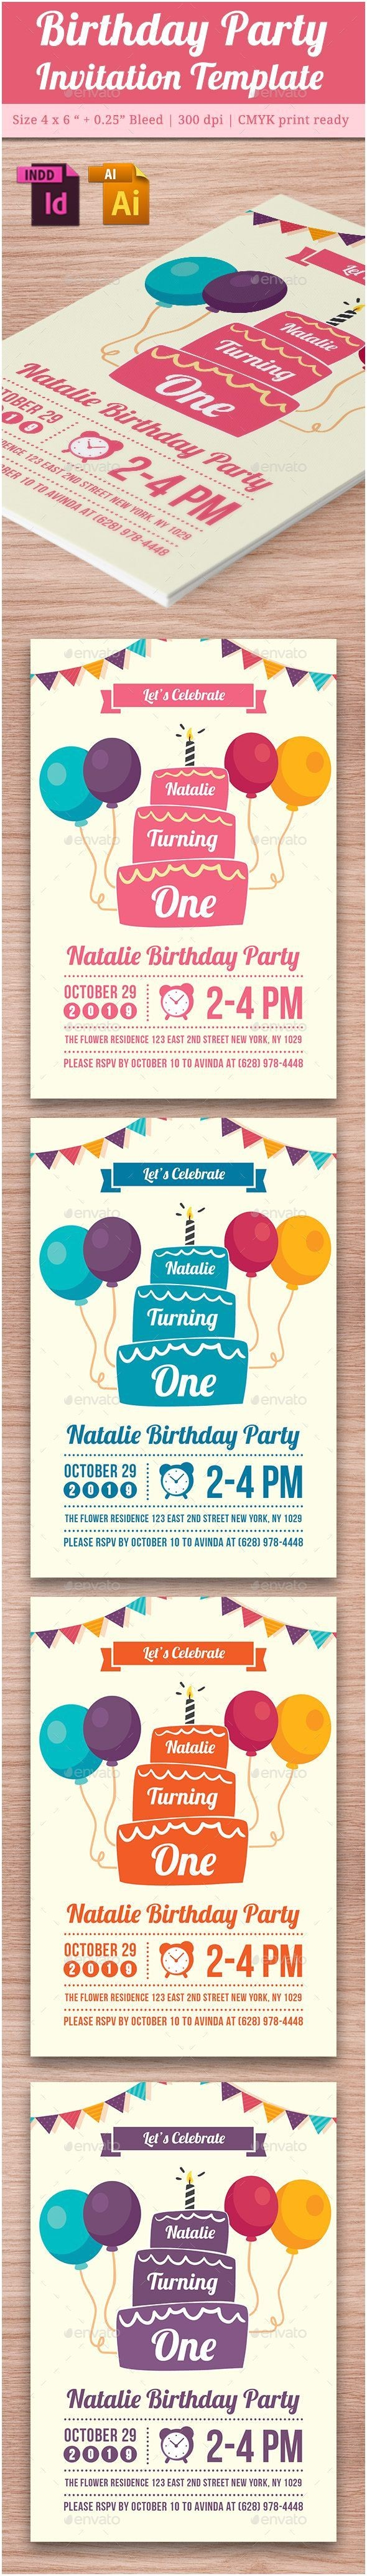 lush party invitations baby birthday template vol 4 pinterest